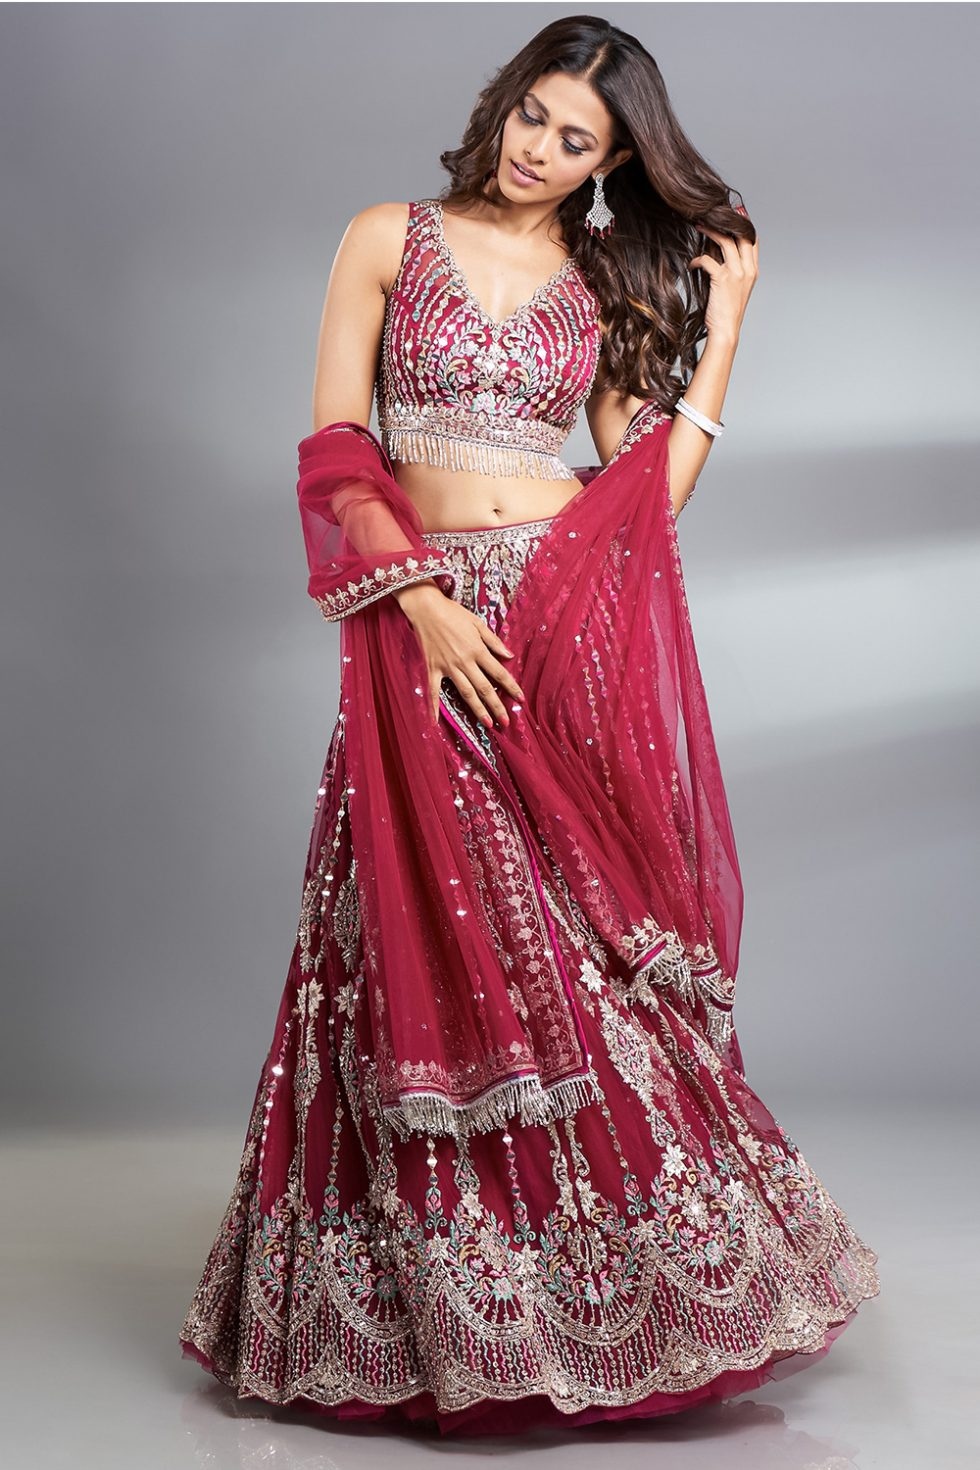 """Wine magenta lehenga set with multi coloured threadwork and """"abla"""" embroidery paired with a scalloped neckline classic blouse and a matching dupatta with tassels and silver embellishments."""